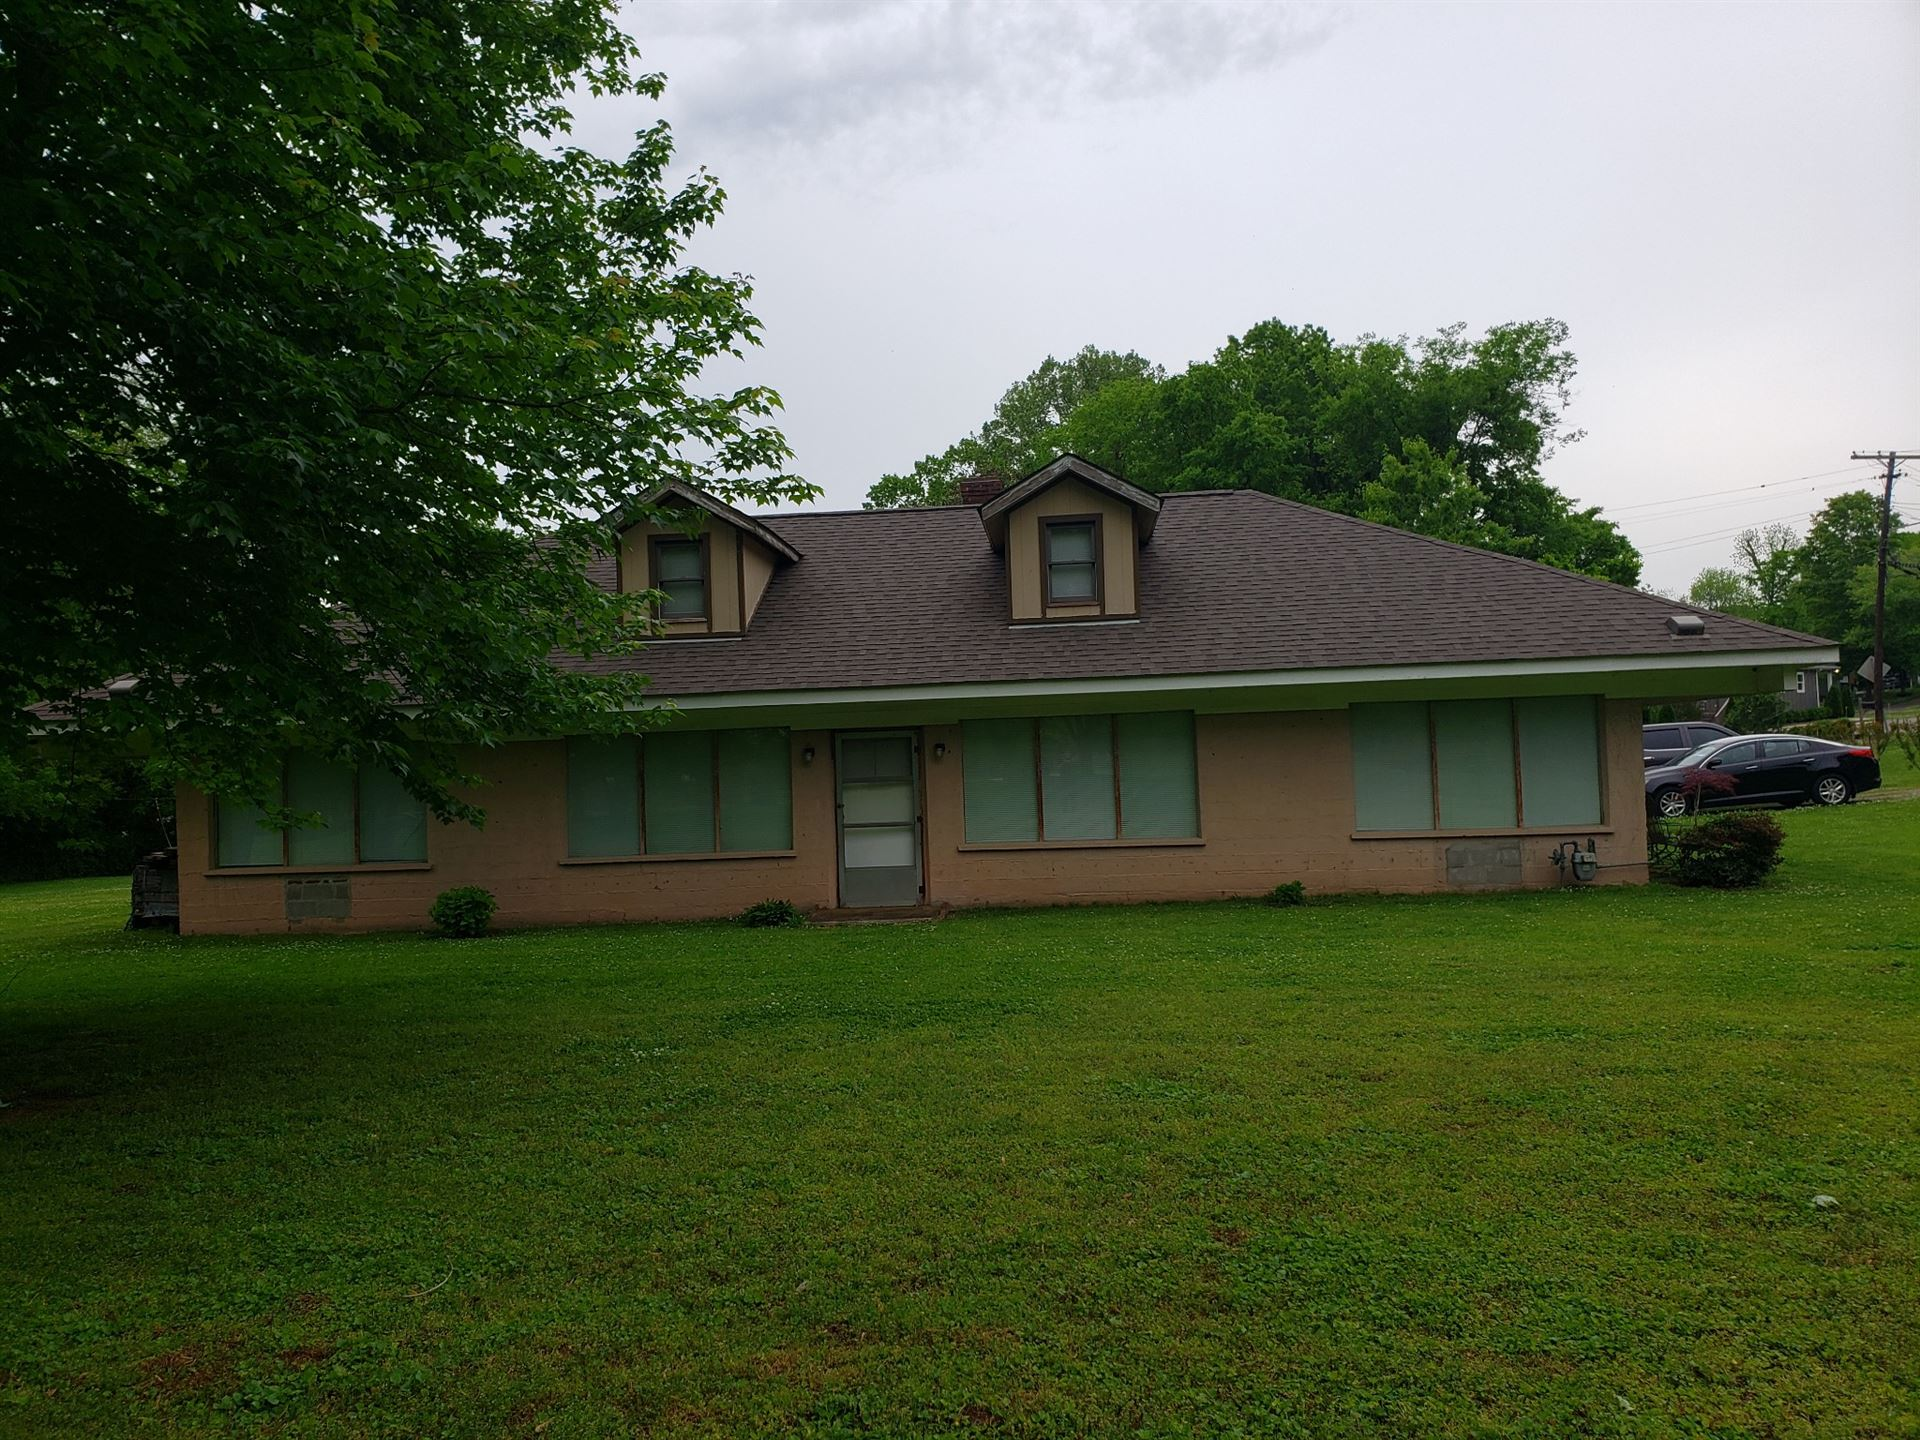 102 McArthur Dr, Old Hickory, TN 37138 - MLS#: 2250945